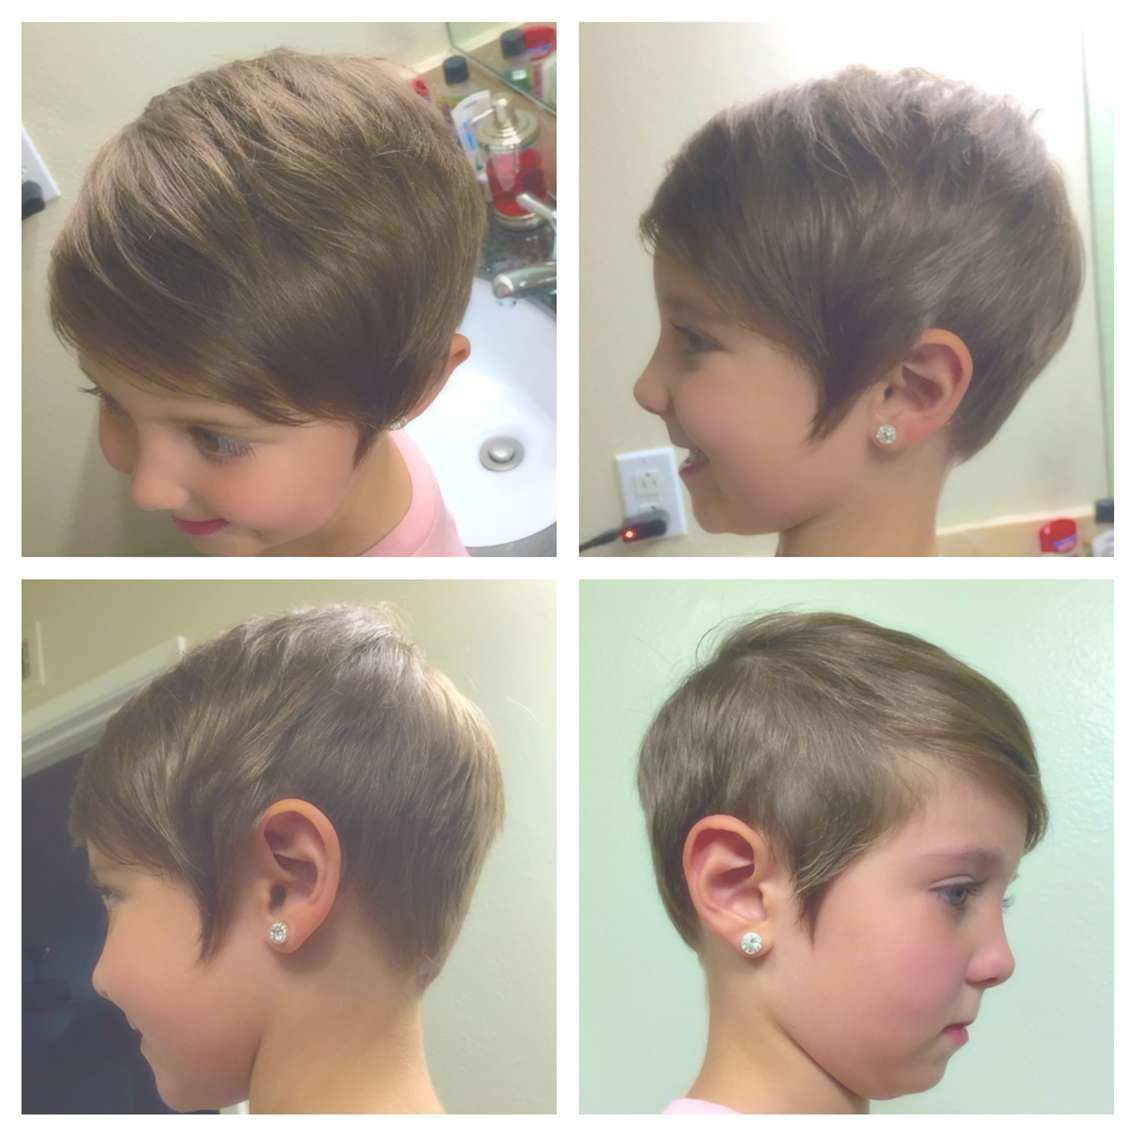 Displaying Gallery Of Childrens Pixie Hairstyles View 8 Of 16 Photos